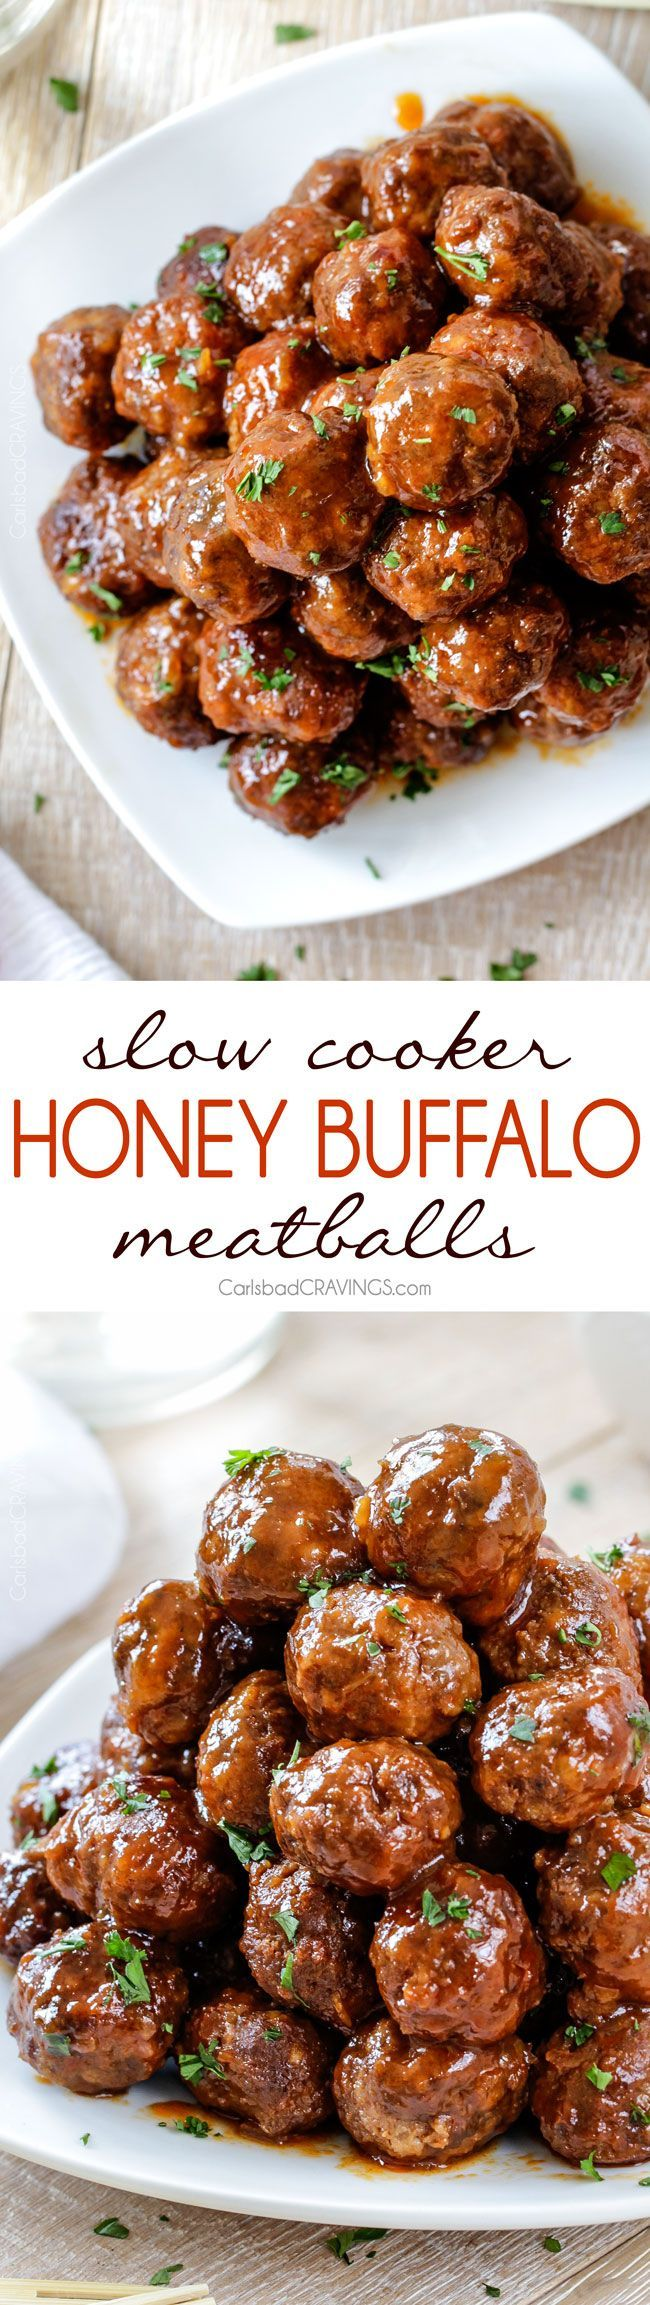 how to cook frozen meatballs in slow cooker